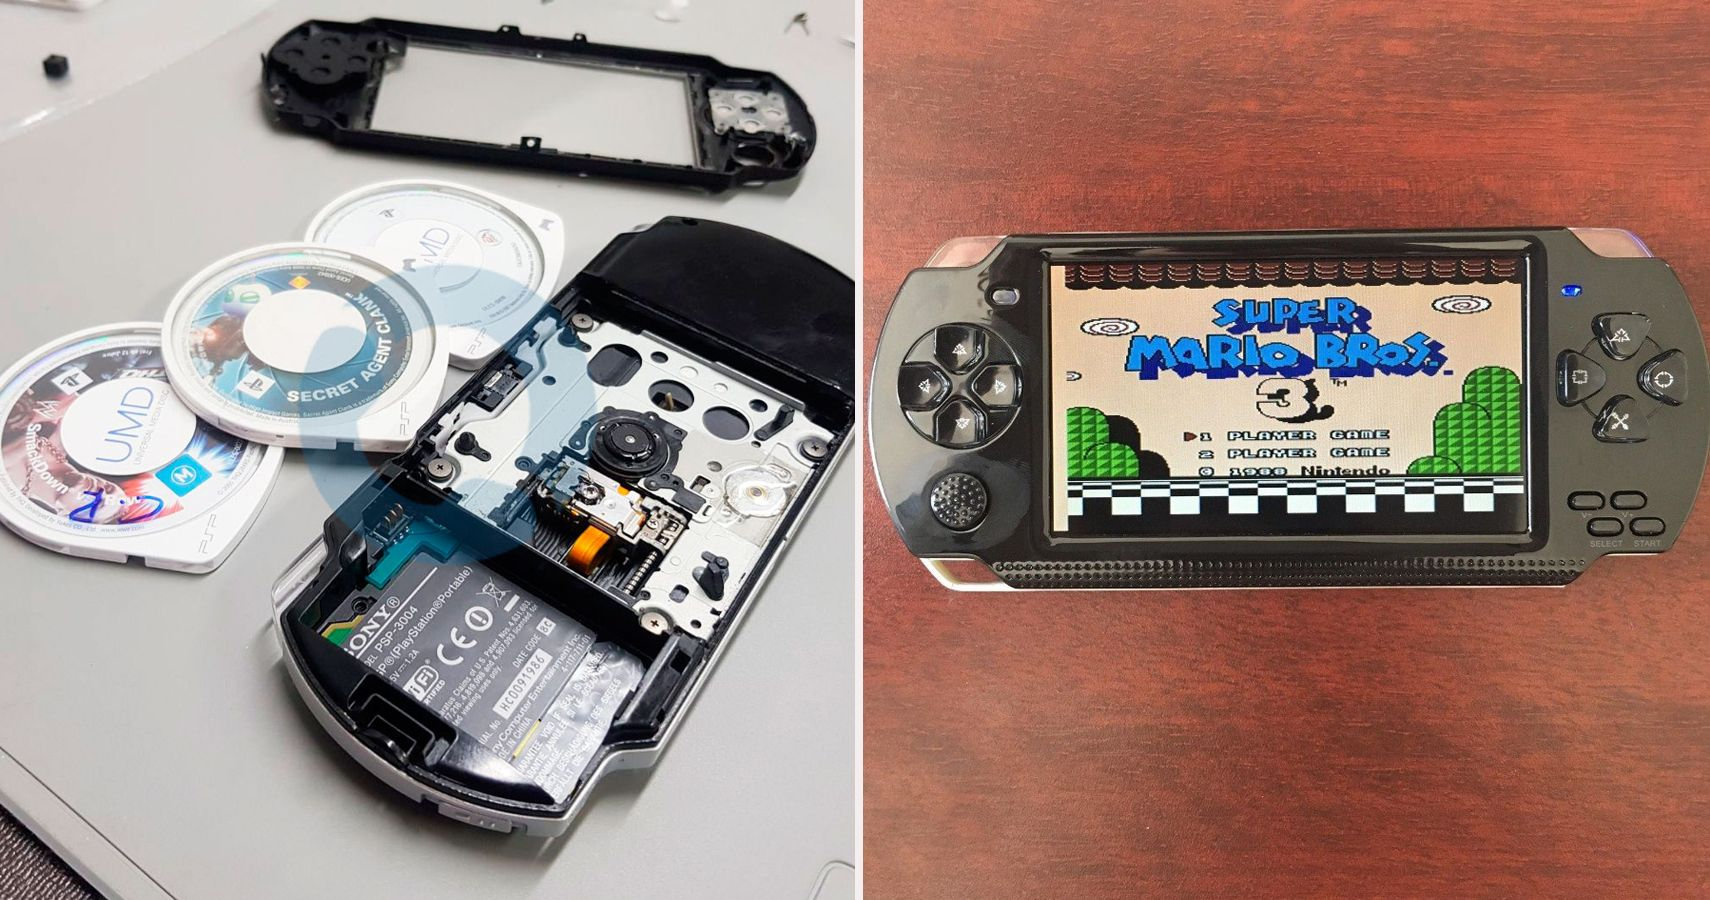 22 Hidden Details About The PlayStation Portable Only True Fans Know